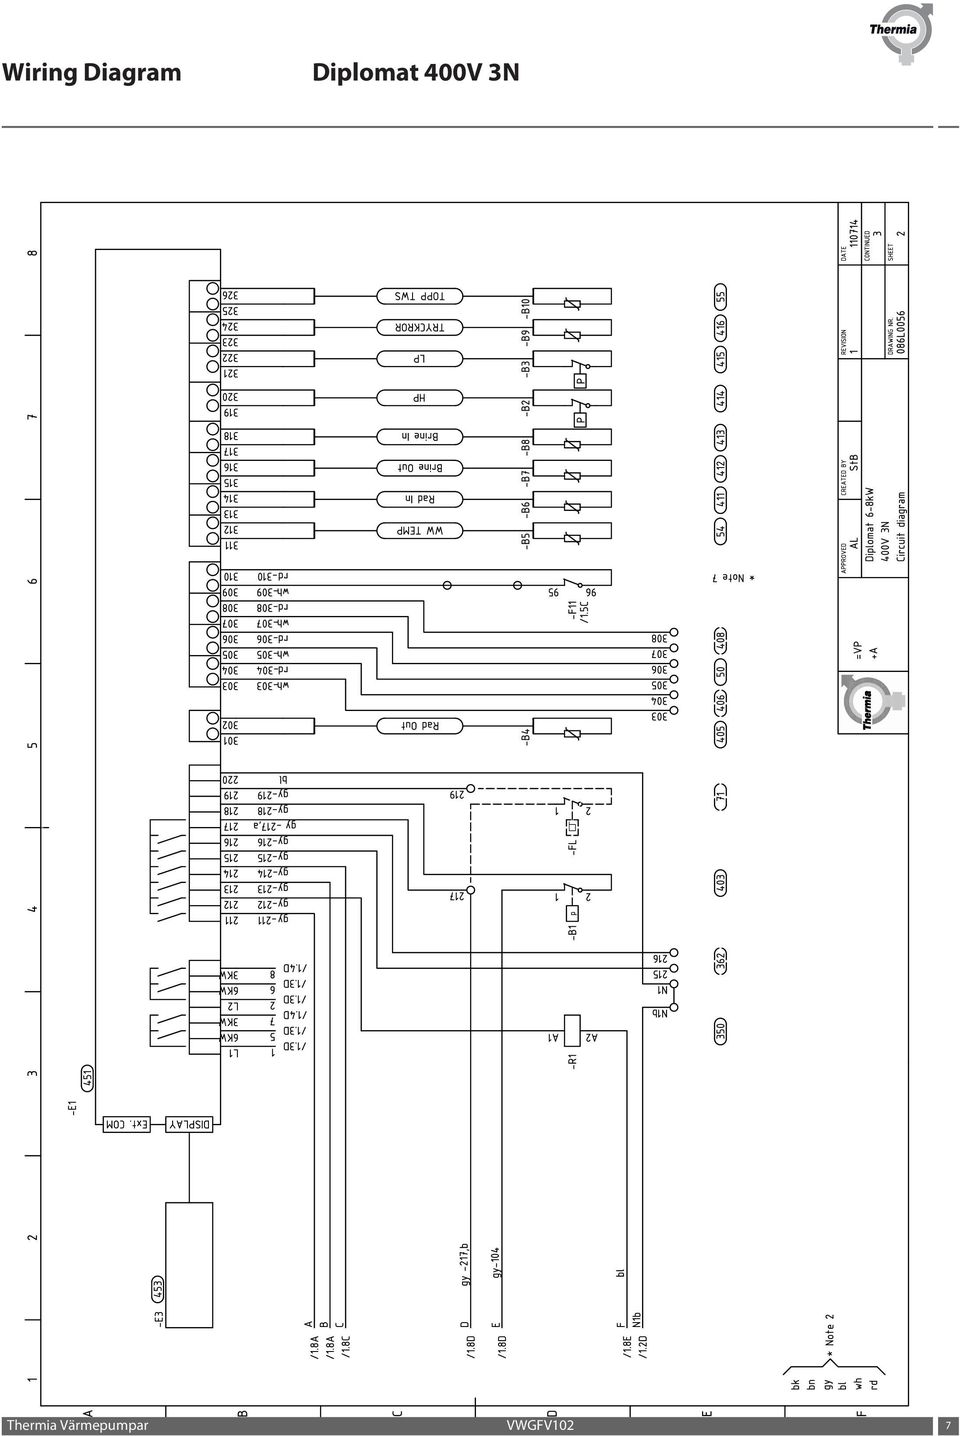 Diplomat Wiring Diagrams Opinions About Diagram 1983 Dodge 400v 3n Pdf Automotive